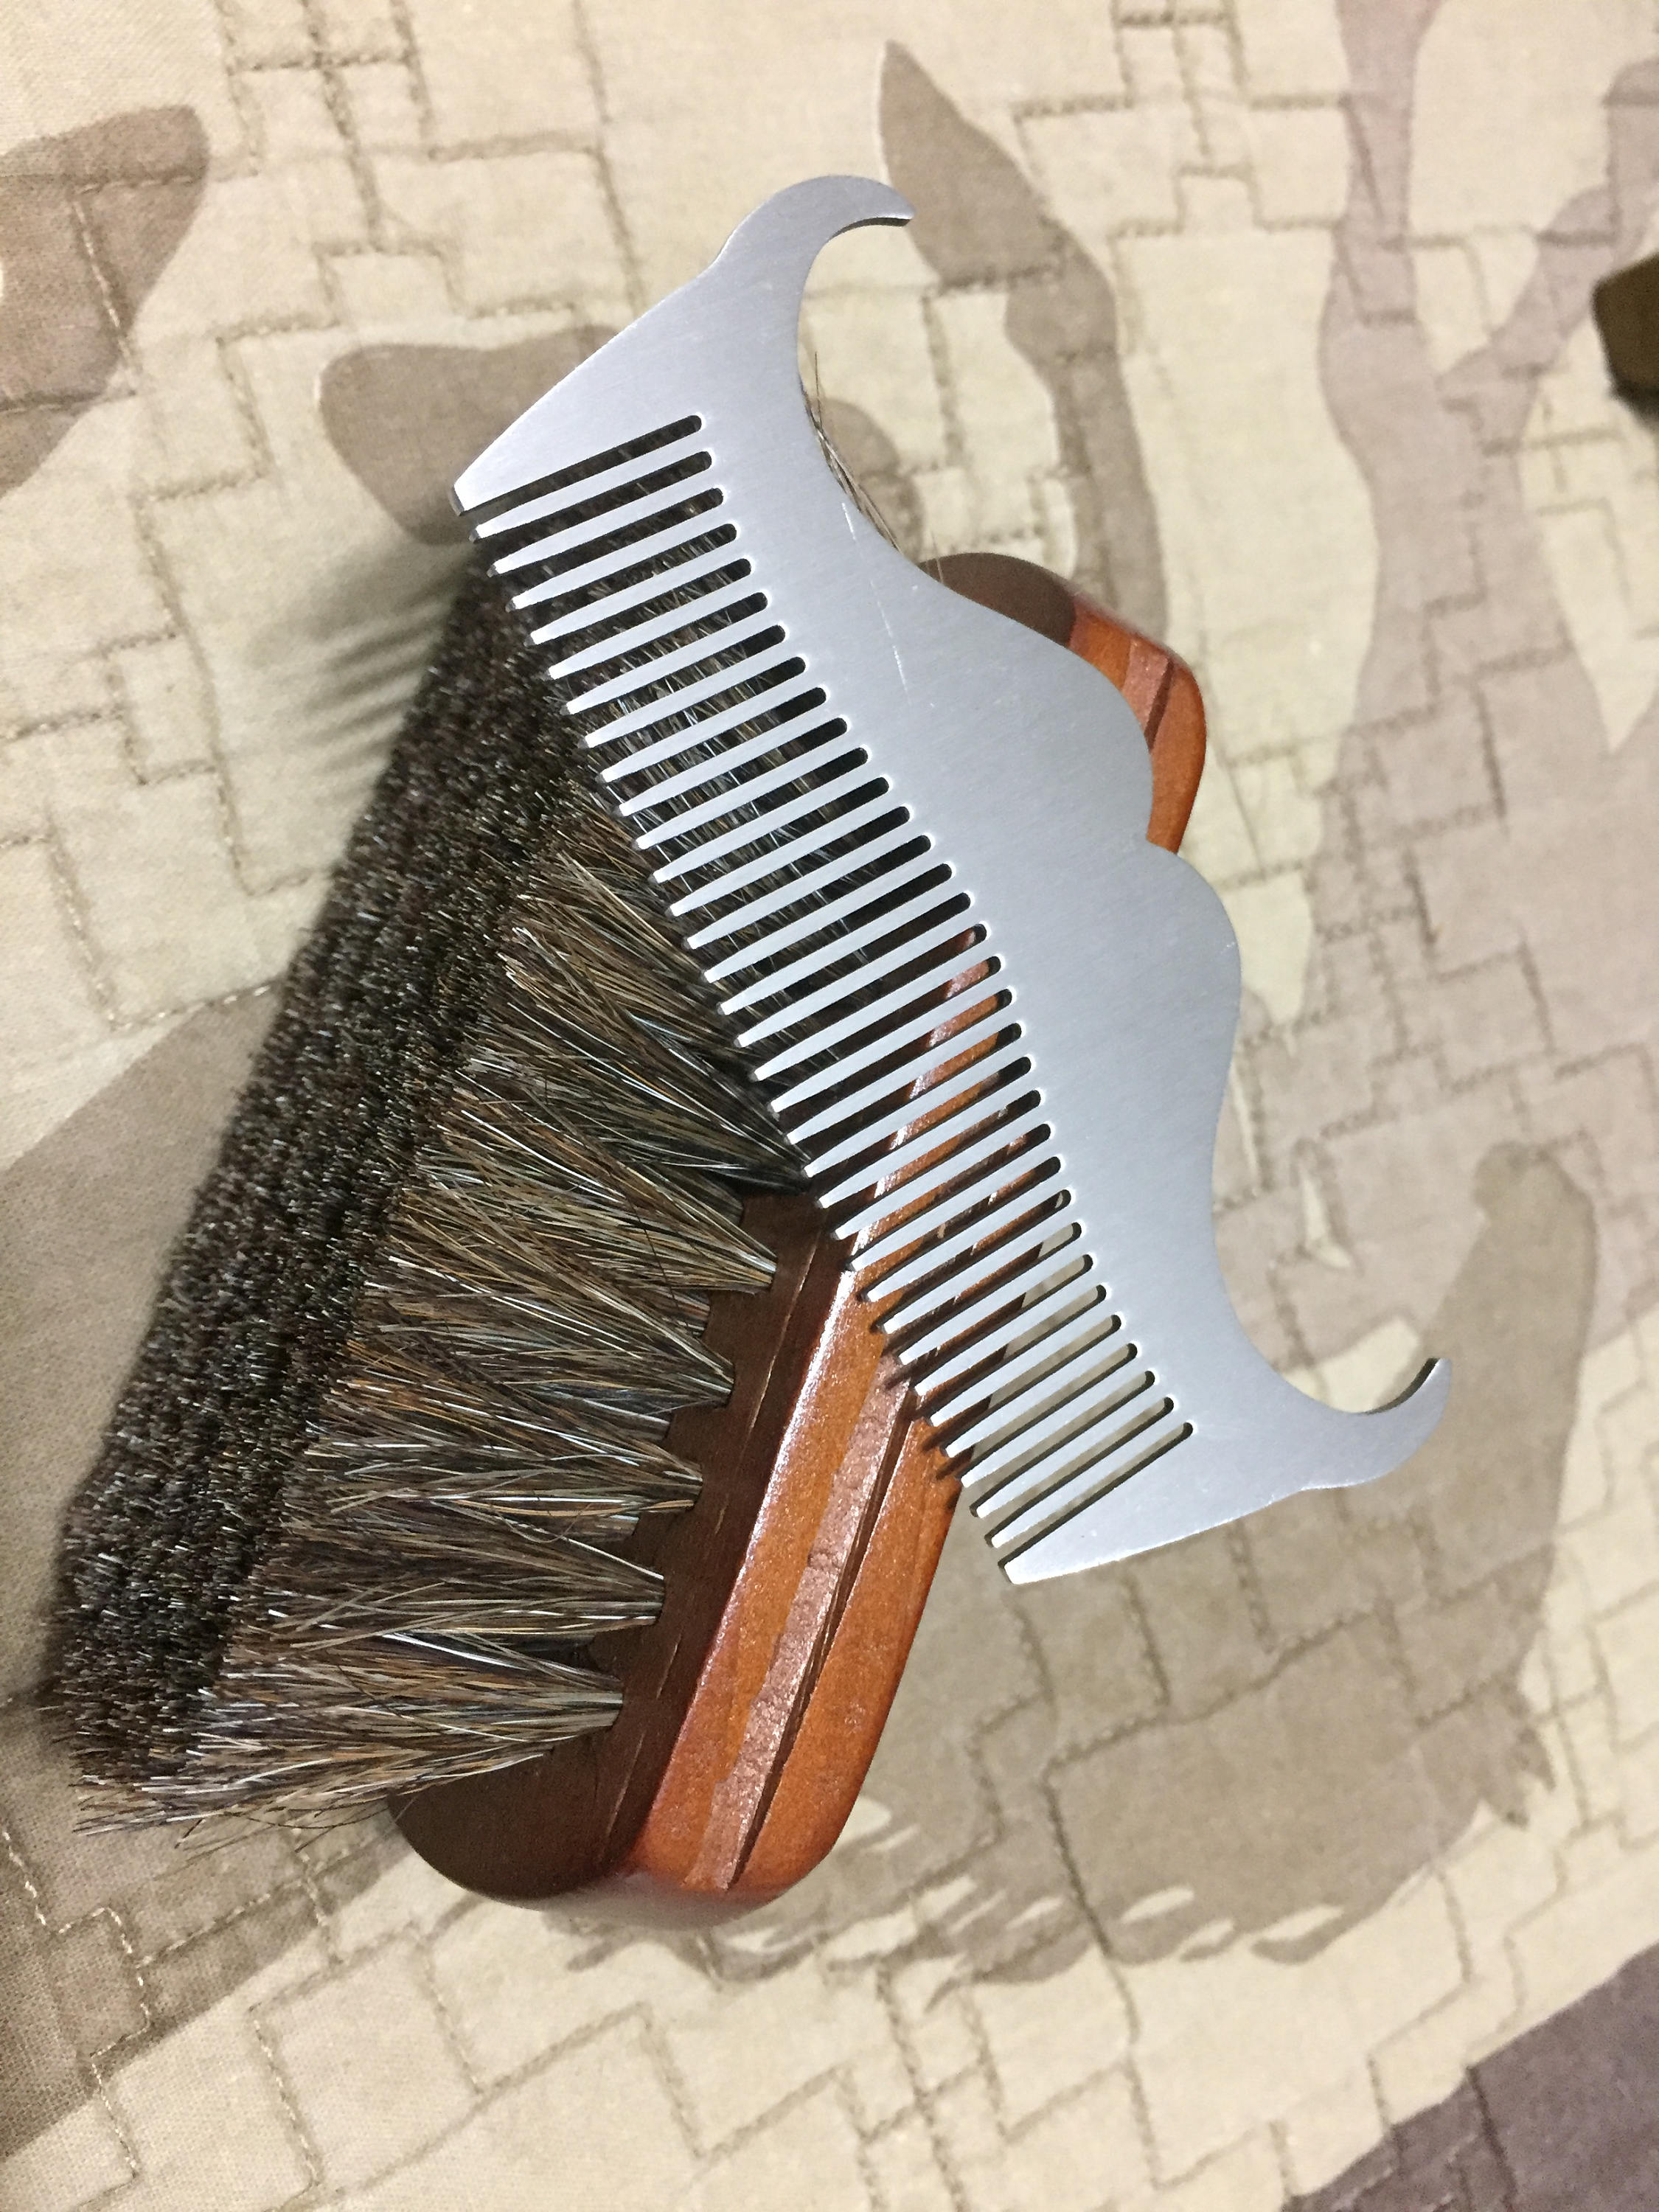 Comb - Stainless Steel Mo Comb